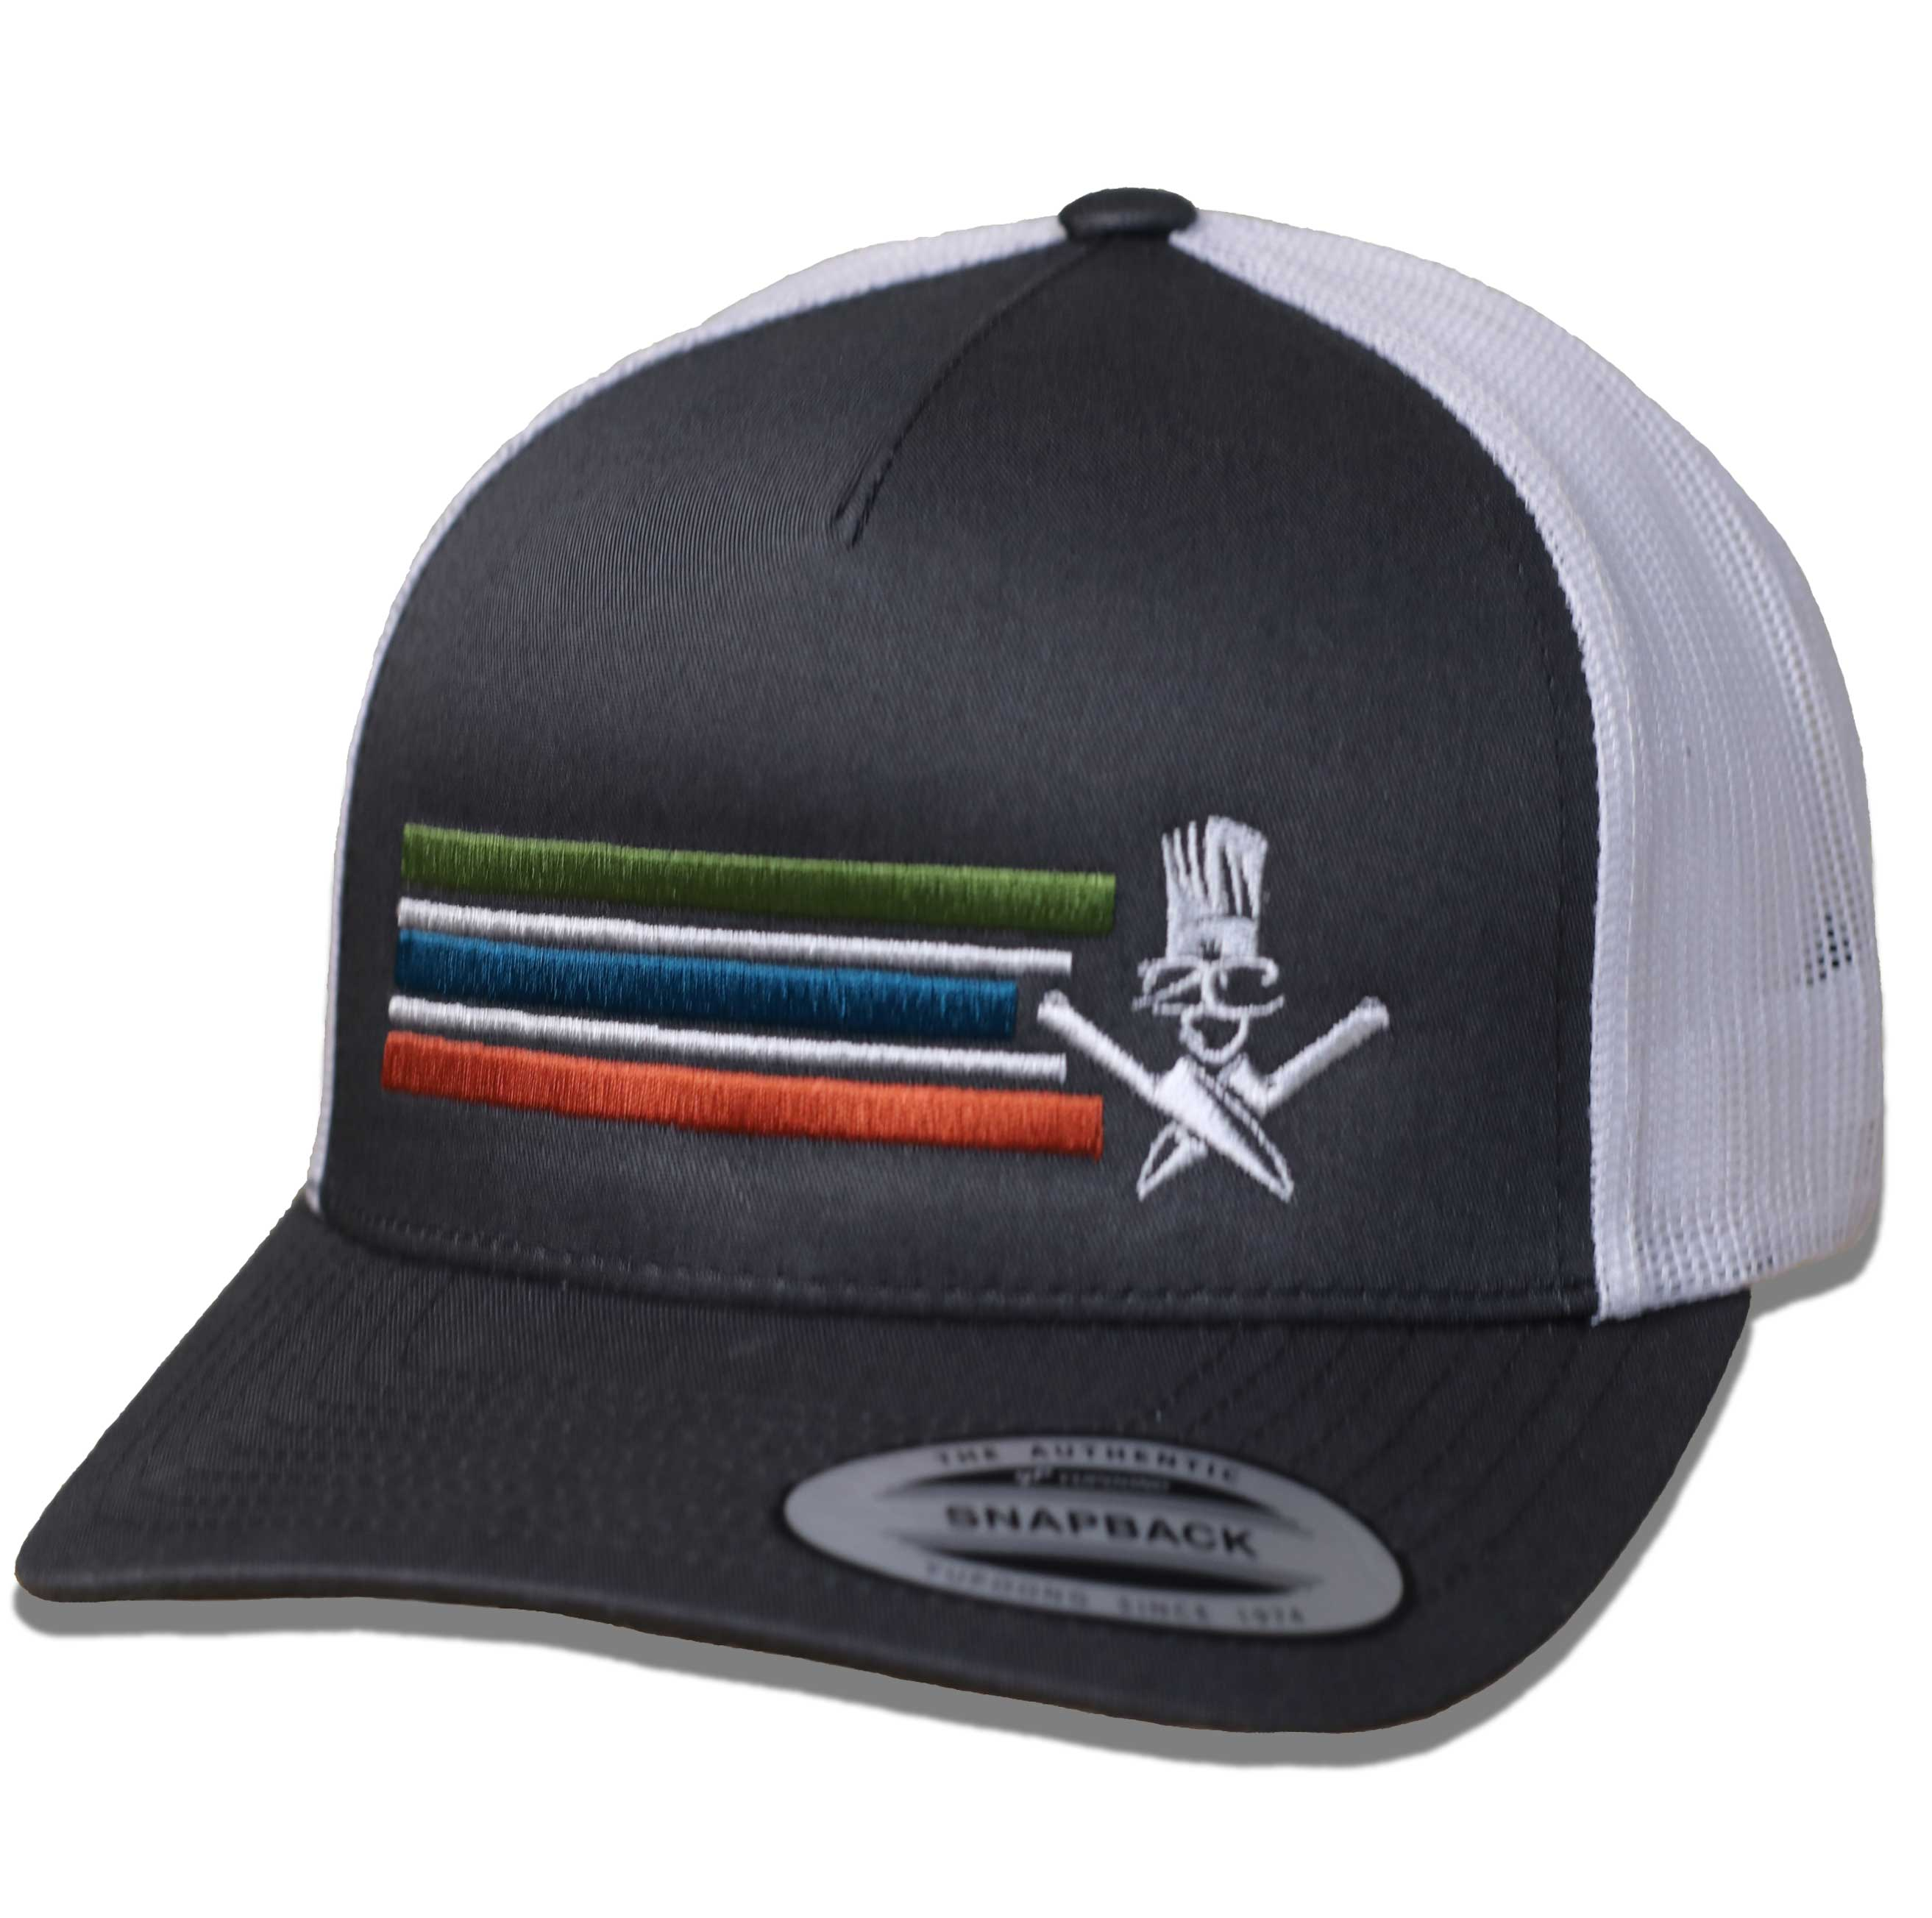 4171ea729ff66 ECO VINTAGE VIBES HAT - Extreme Culinary Outfitters